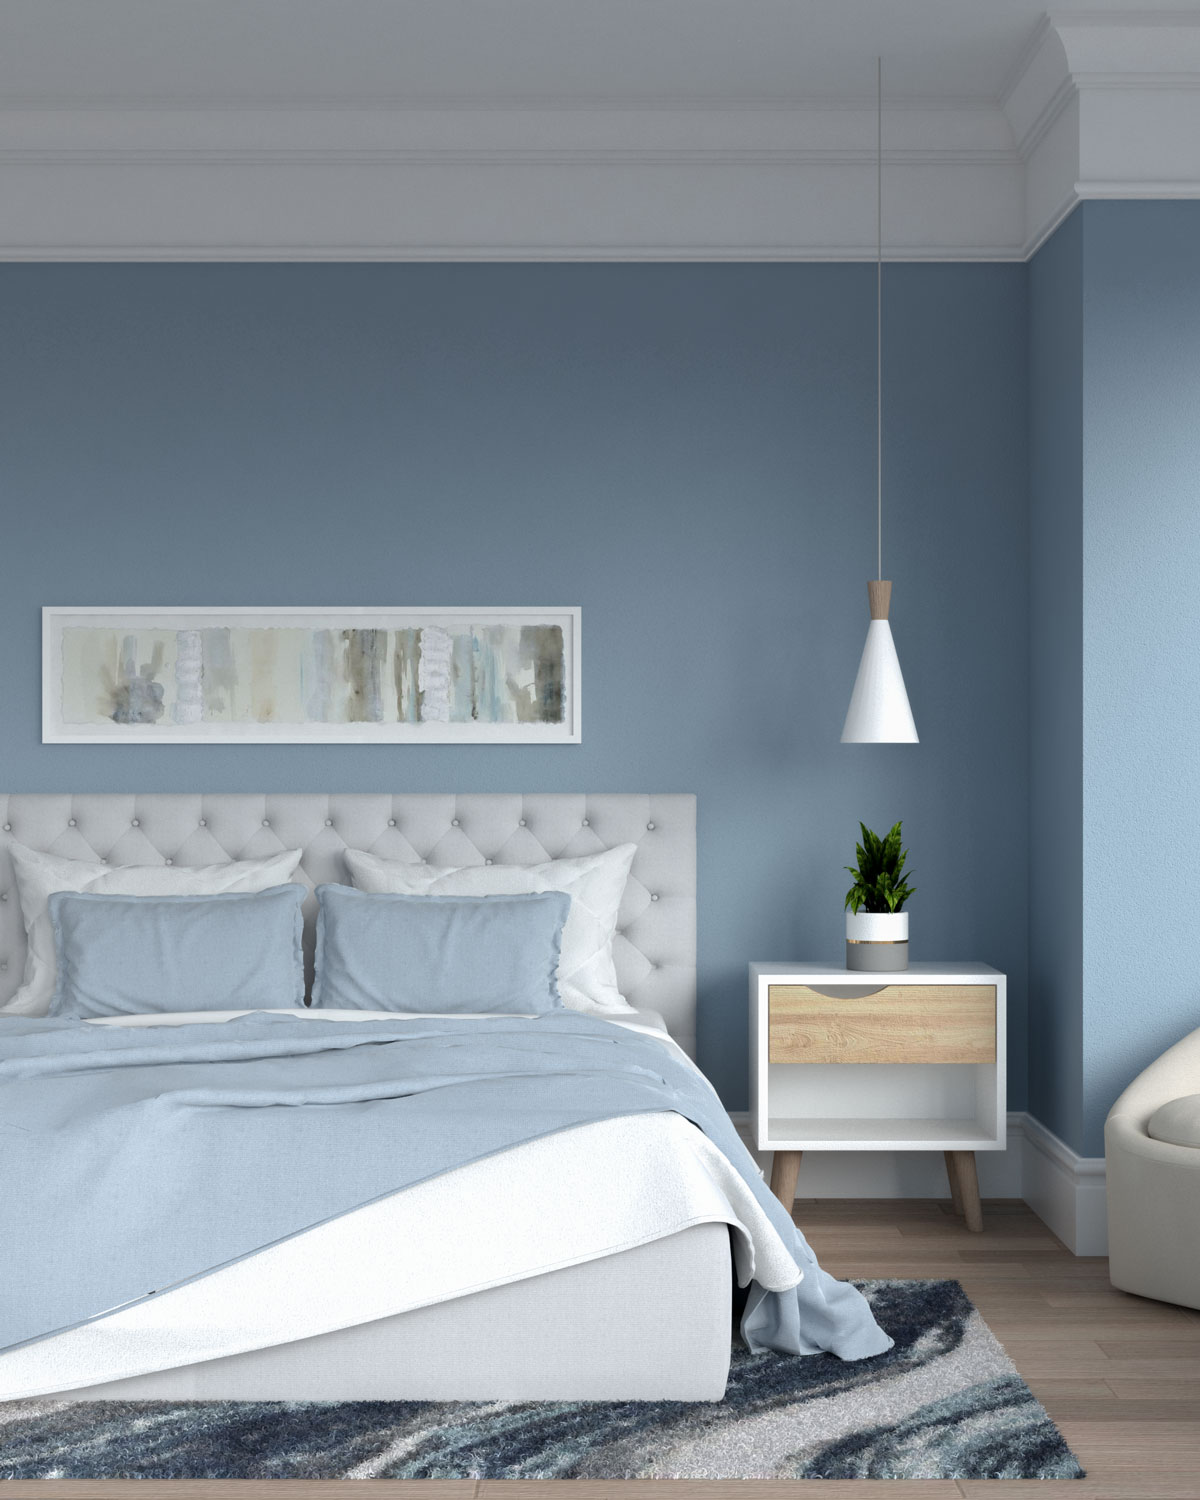 White and blue bedding with blue walls